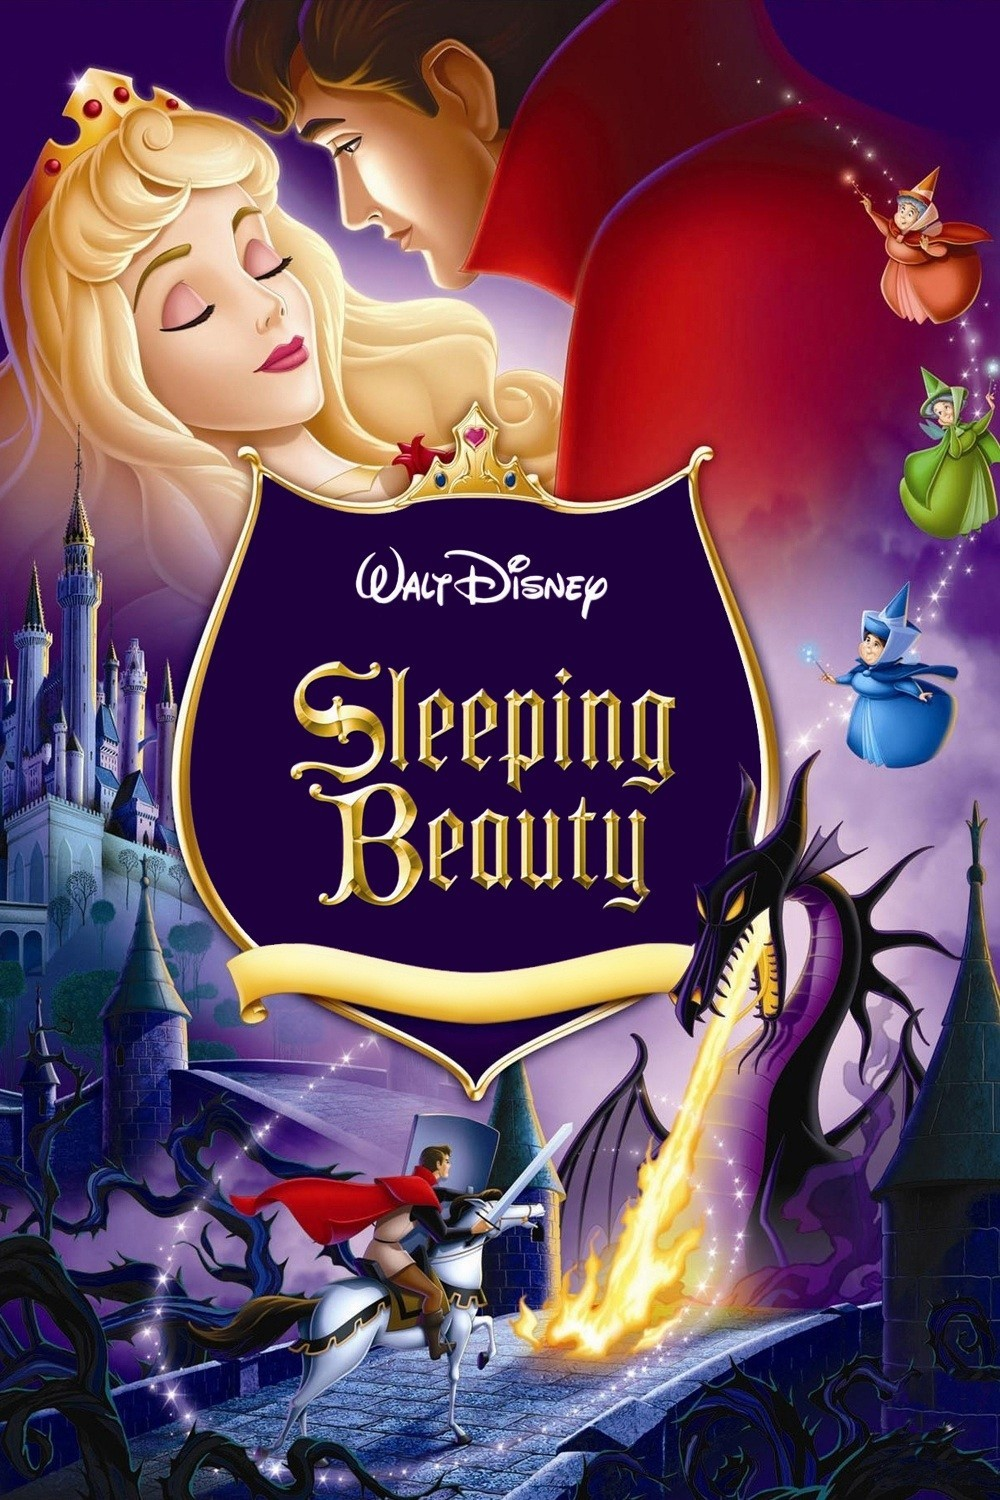 http://img3.wikia.nocookie.net/__cb20130717204800/disney/images/a/a9/Sleeping_Beauty_poster.jpg